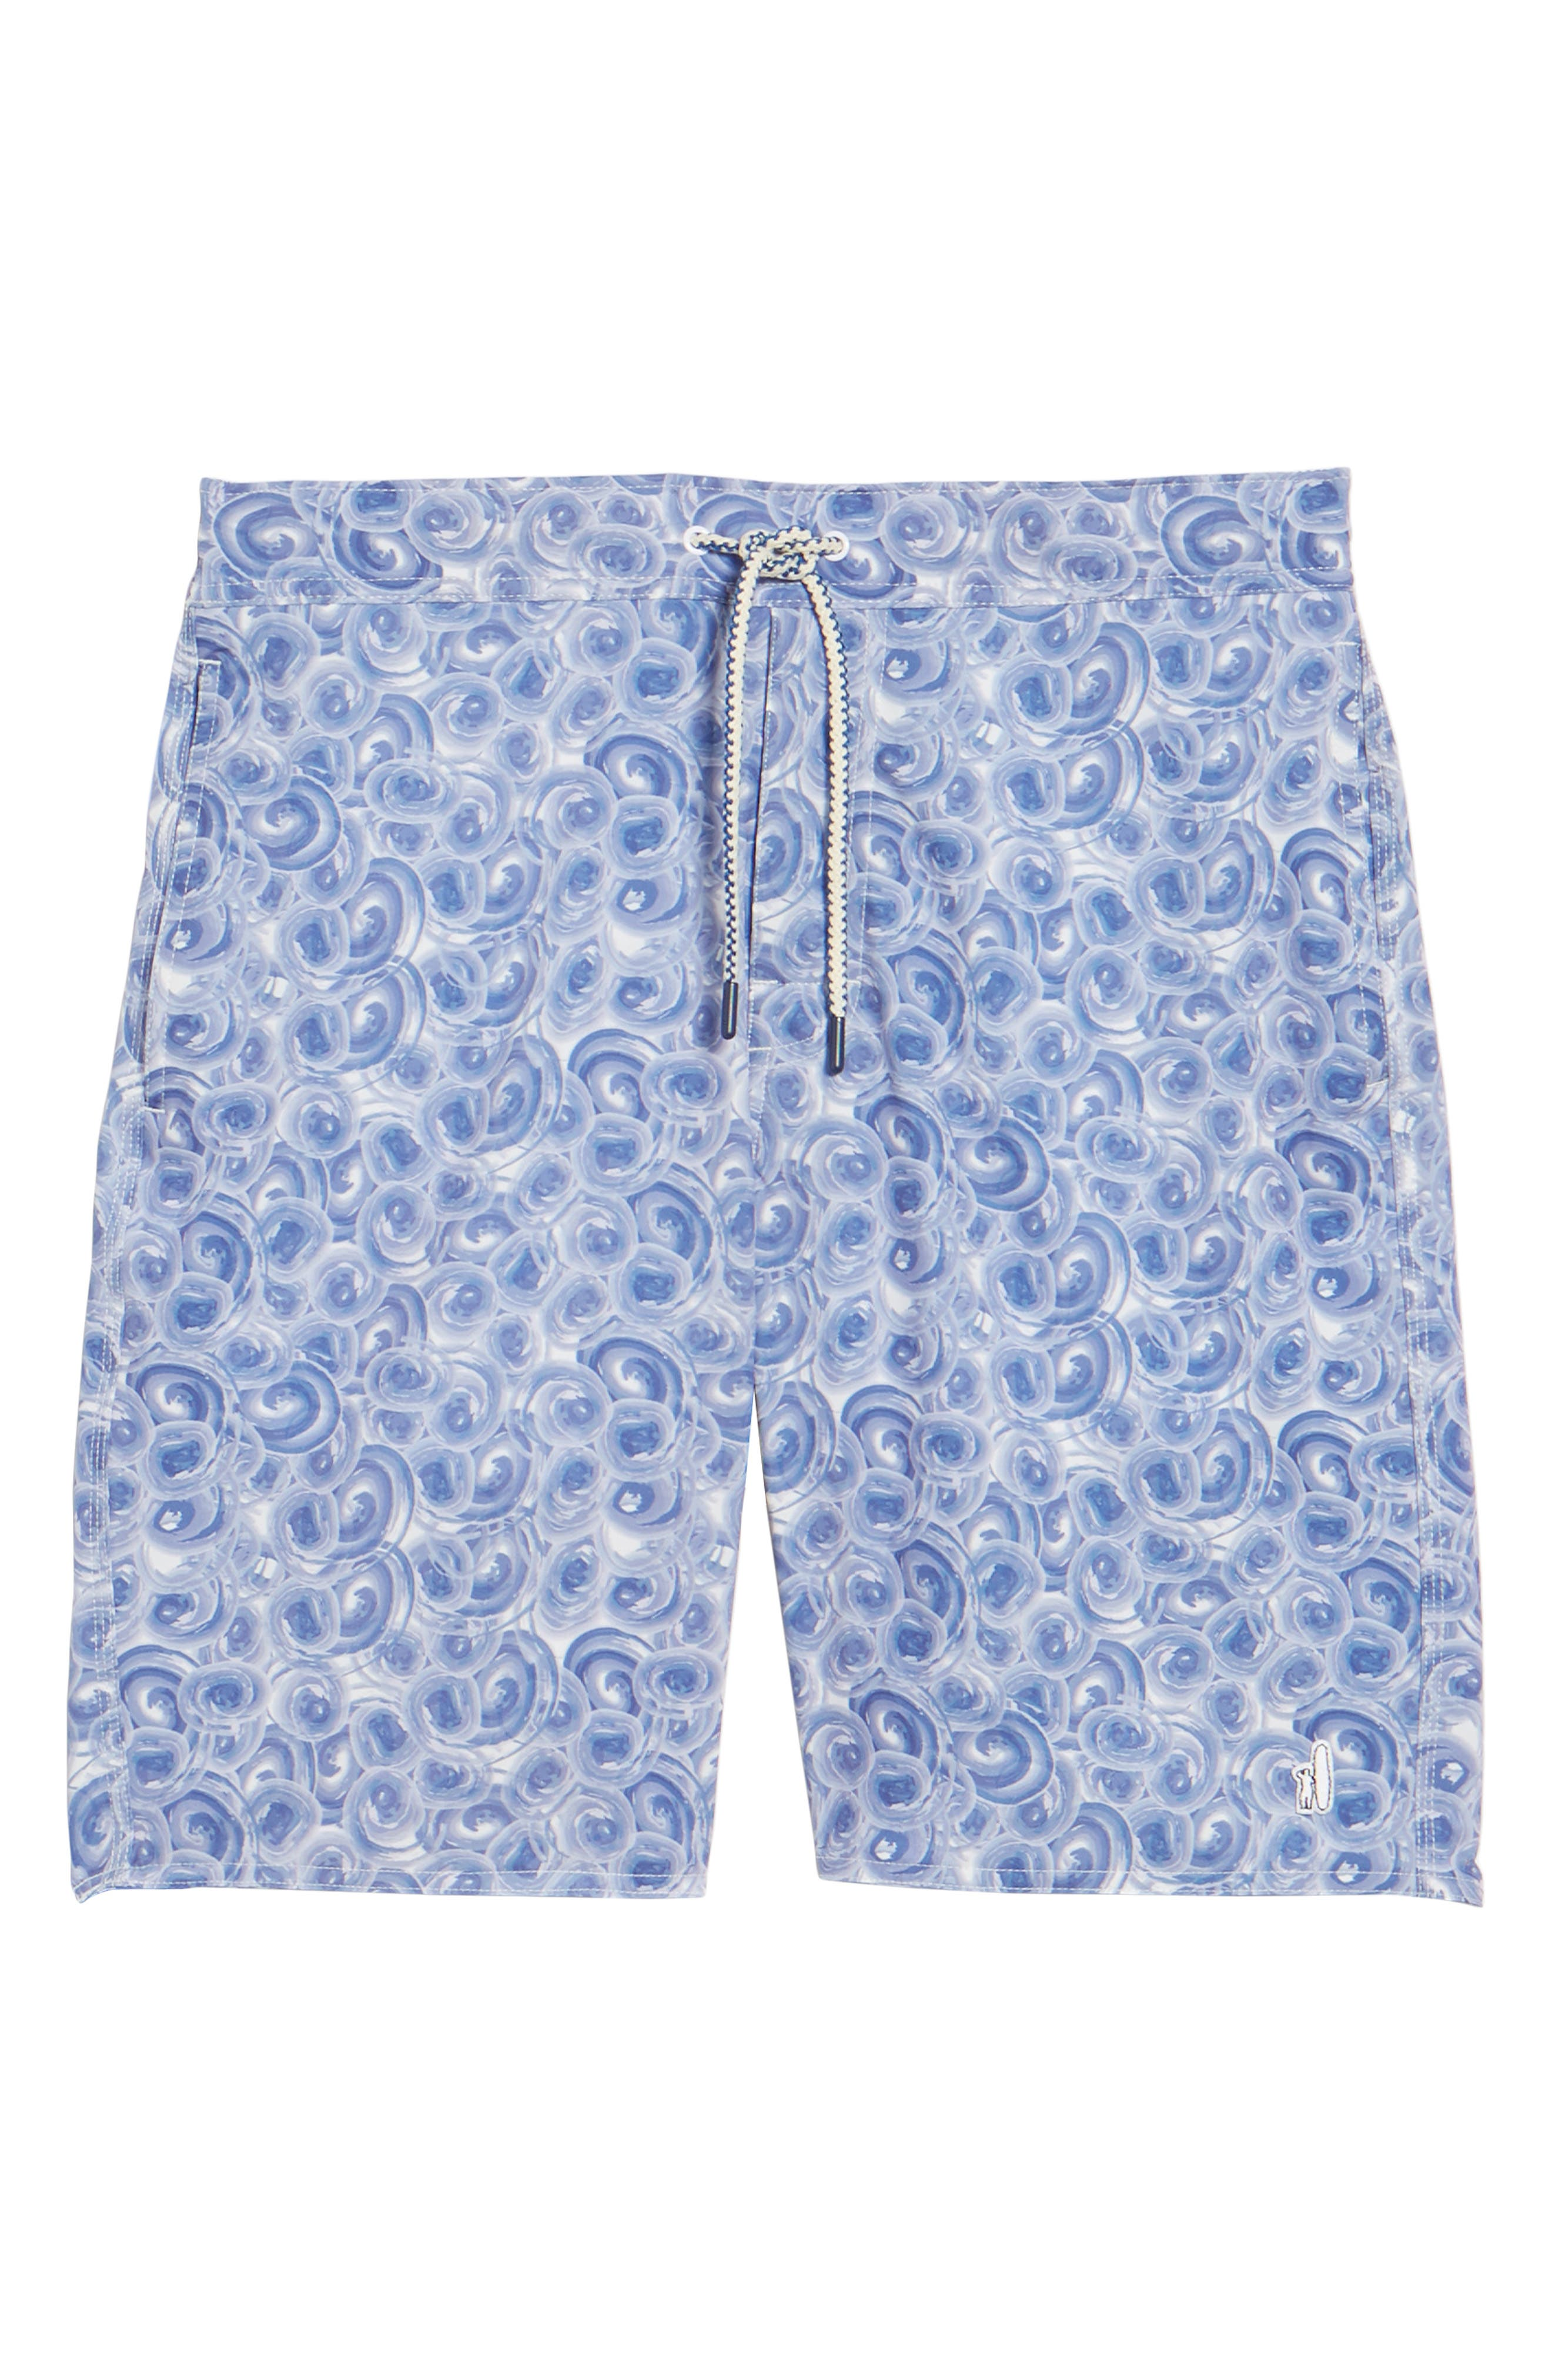 High Tide Regular Fit Board Shorts,                             Alternate thumbnail 6, color,                             Gulf Blue